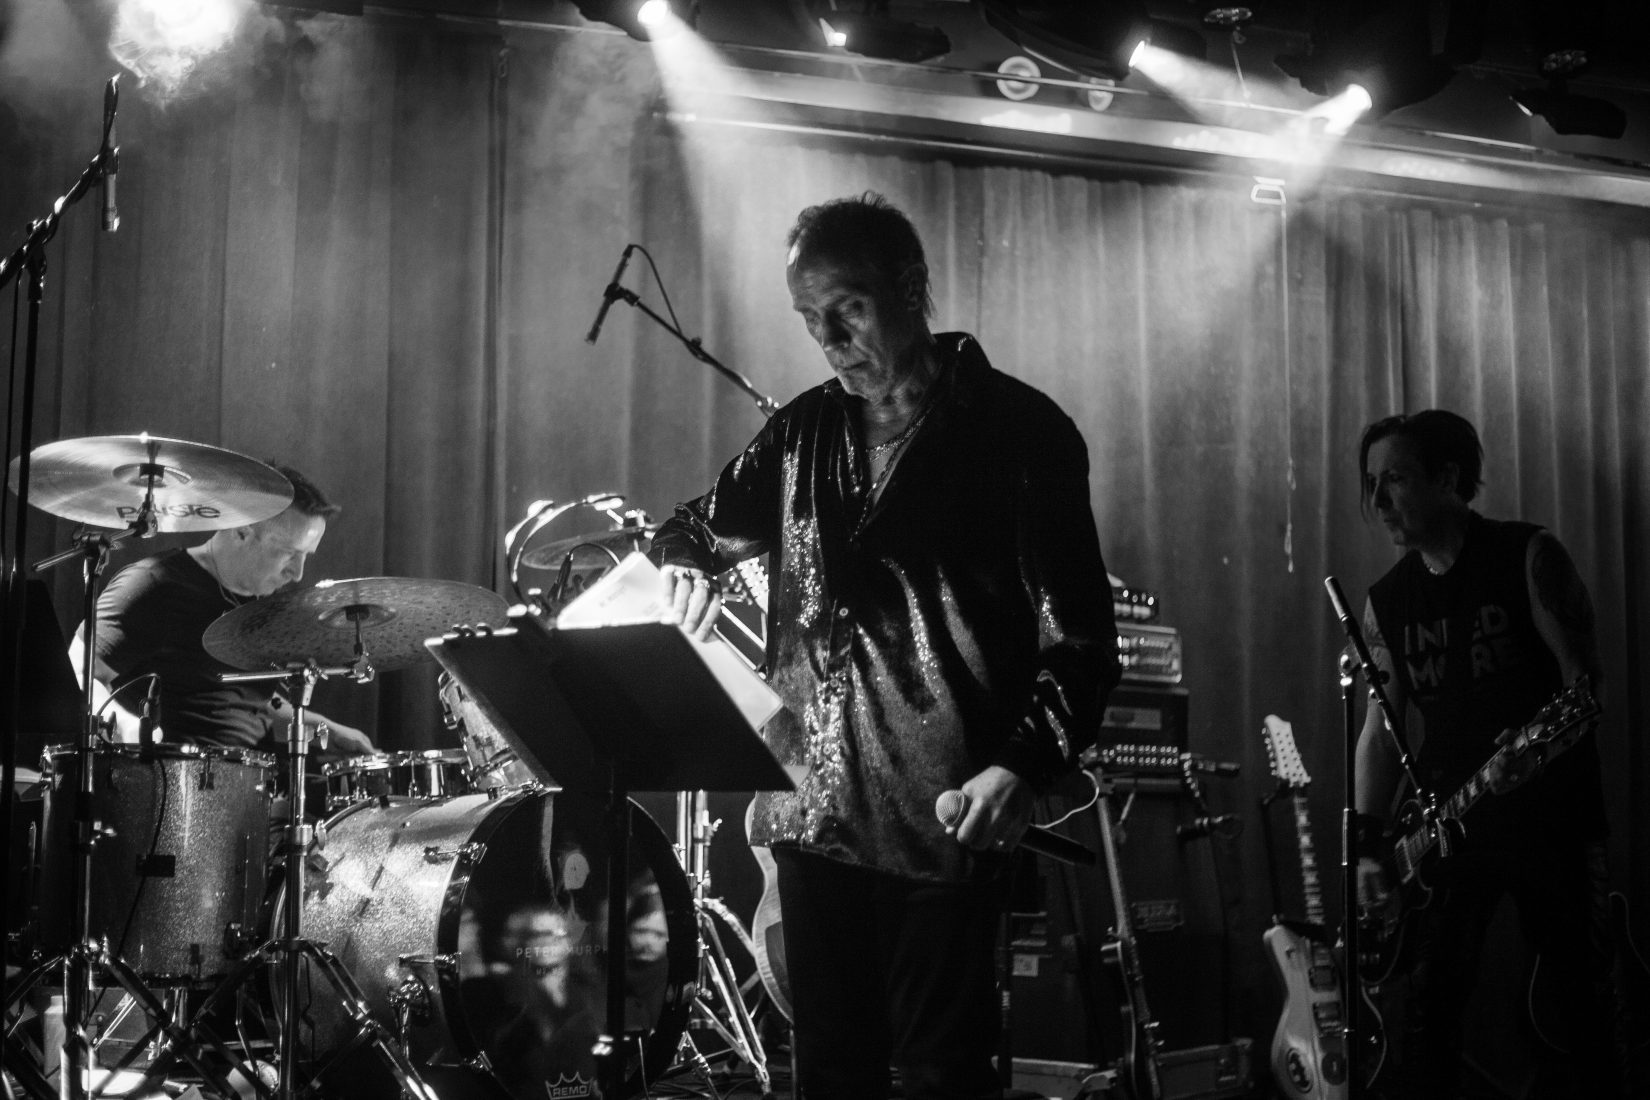 The Lion In Winter: Peter Murphy Returns To Le Poisson Rouge